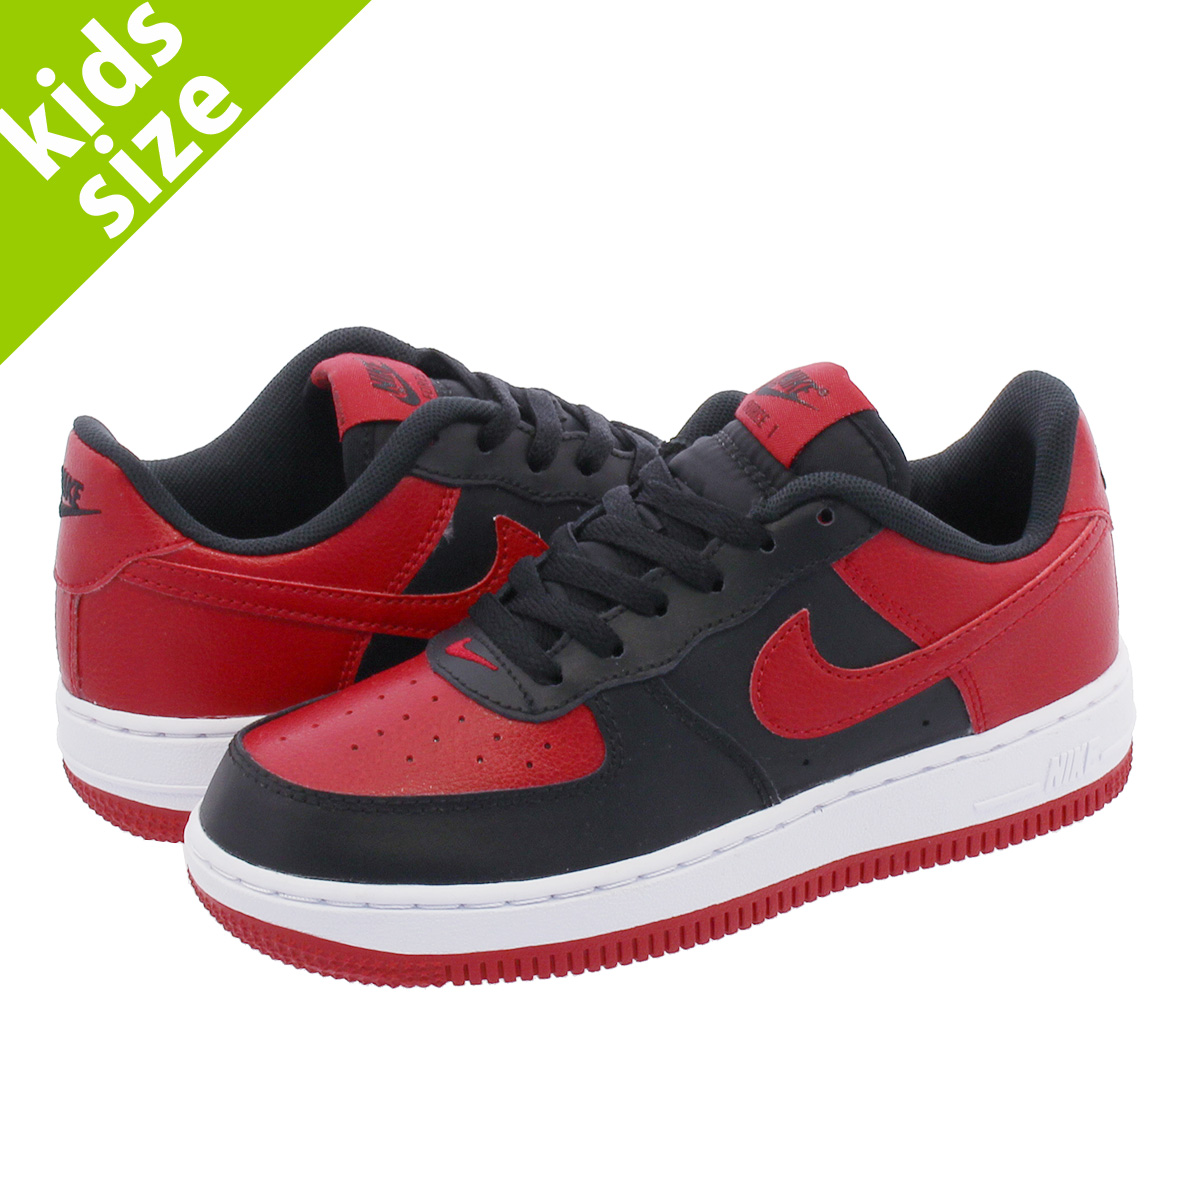 【キッズ サイズ】【16cm-22cm】 NIKE AIR FORCE 1 PS ナイキ エアフォース 1 PS BLACK/GYM RED/WHITE 596729-016